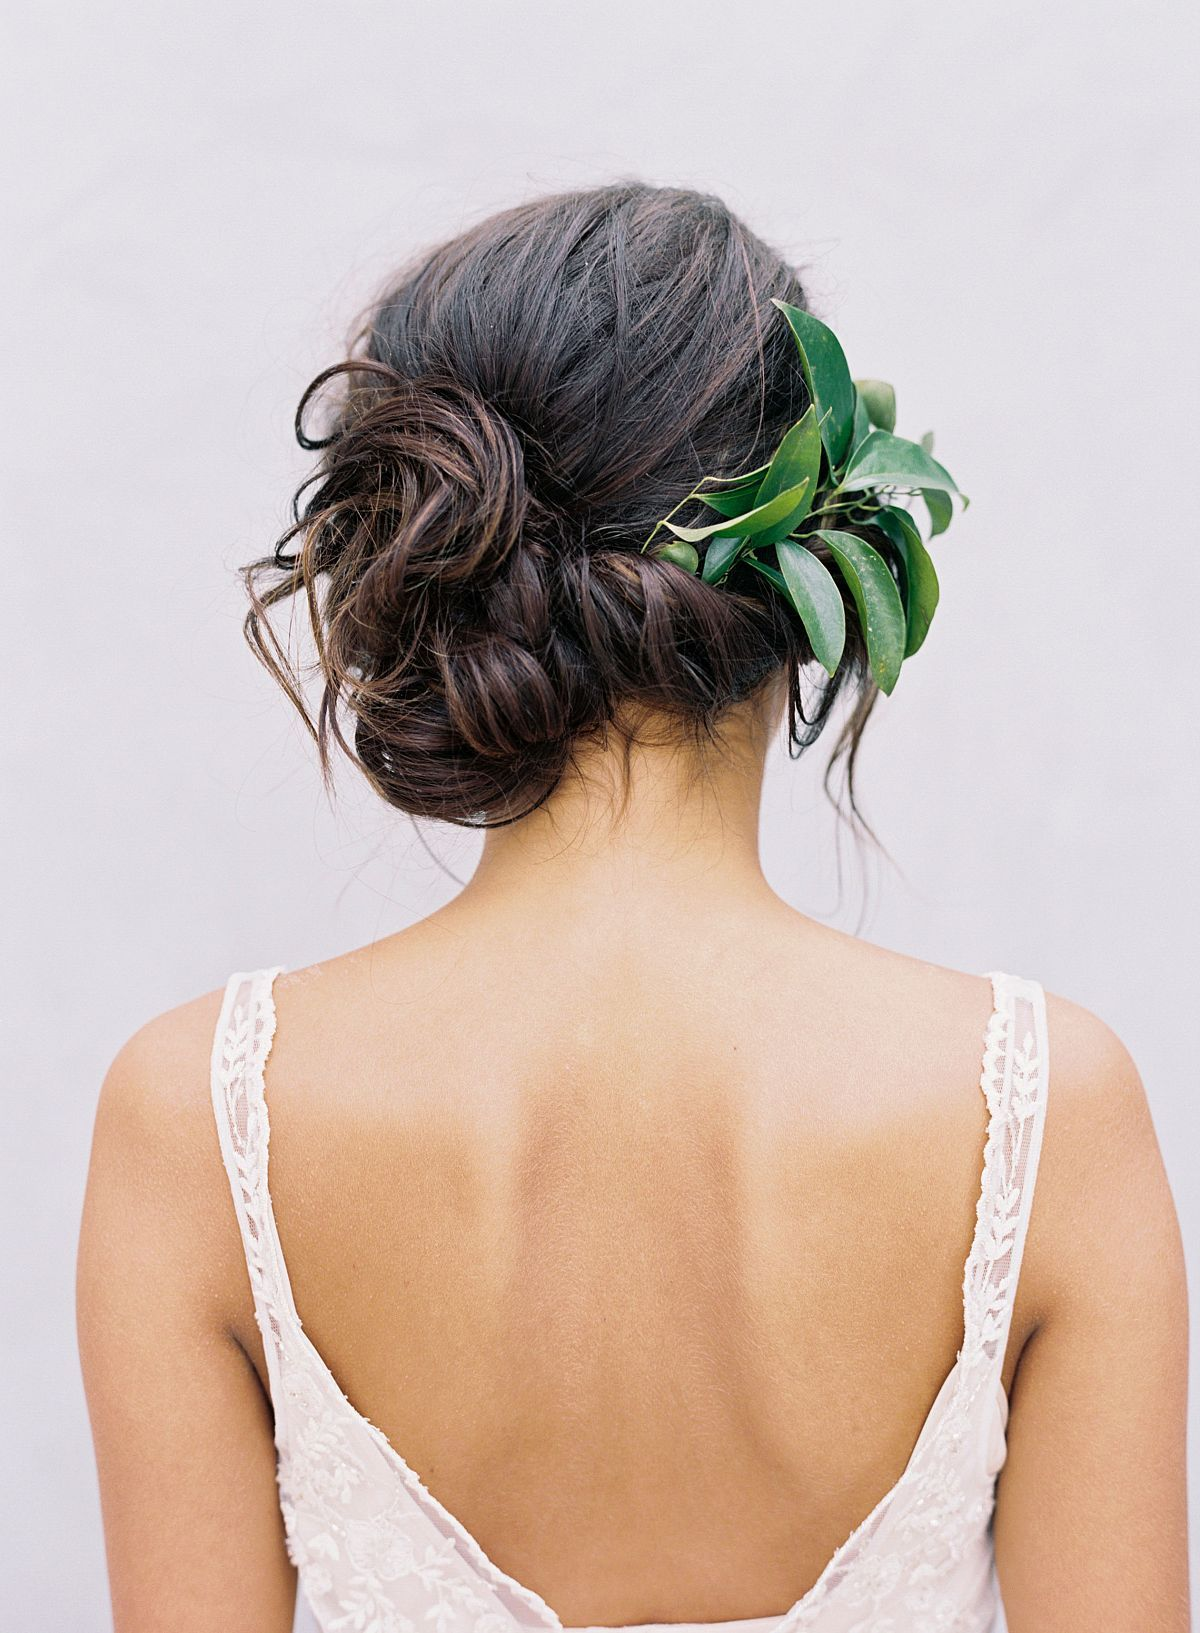 Hair and makeup for a fine art bride from rouge workshop looking